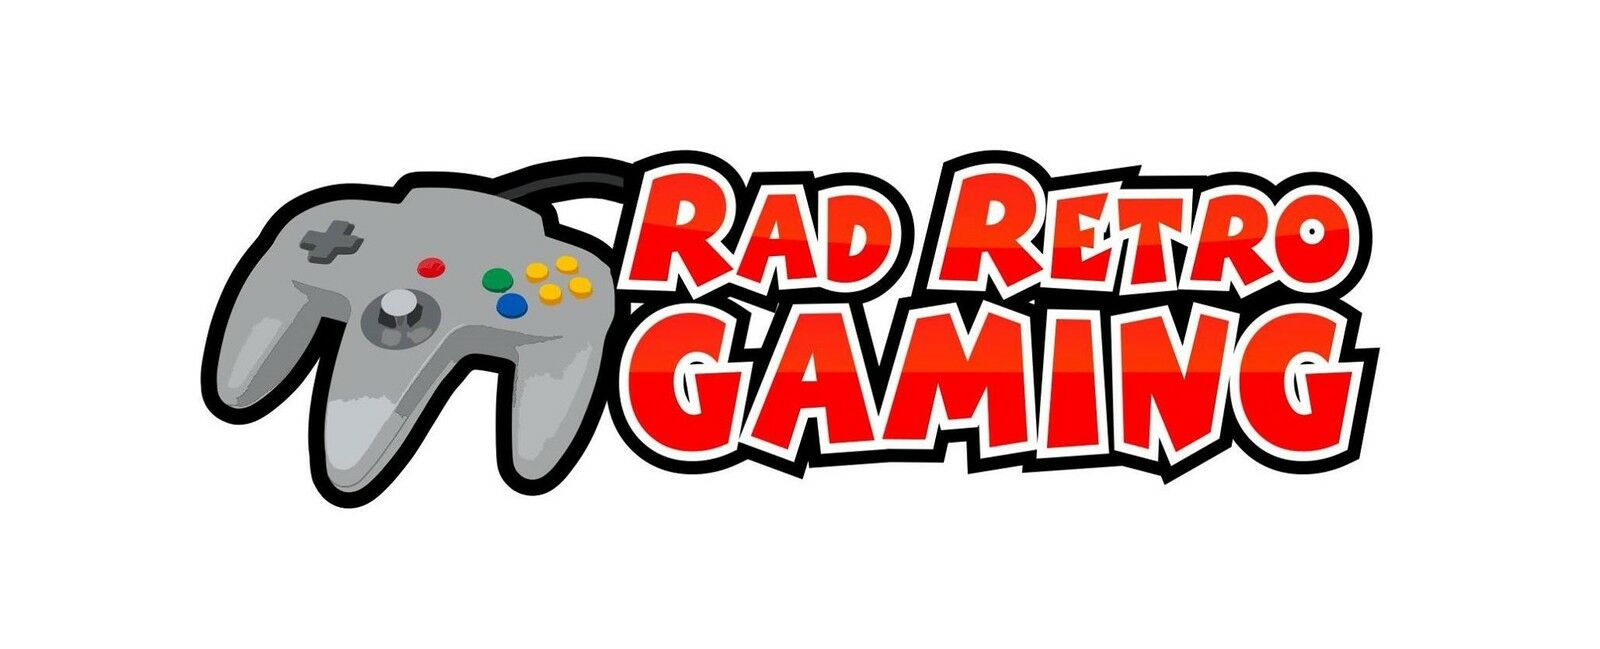 Rad Retro Gaming